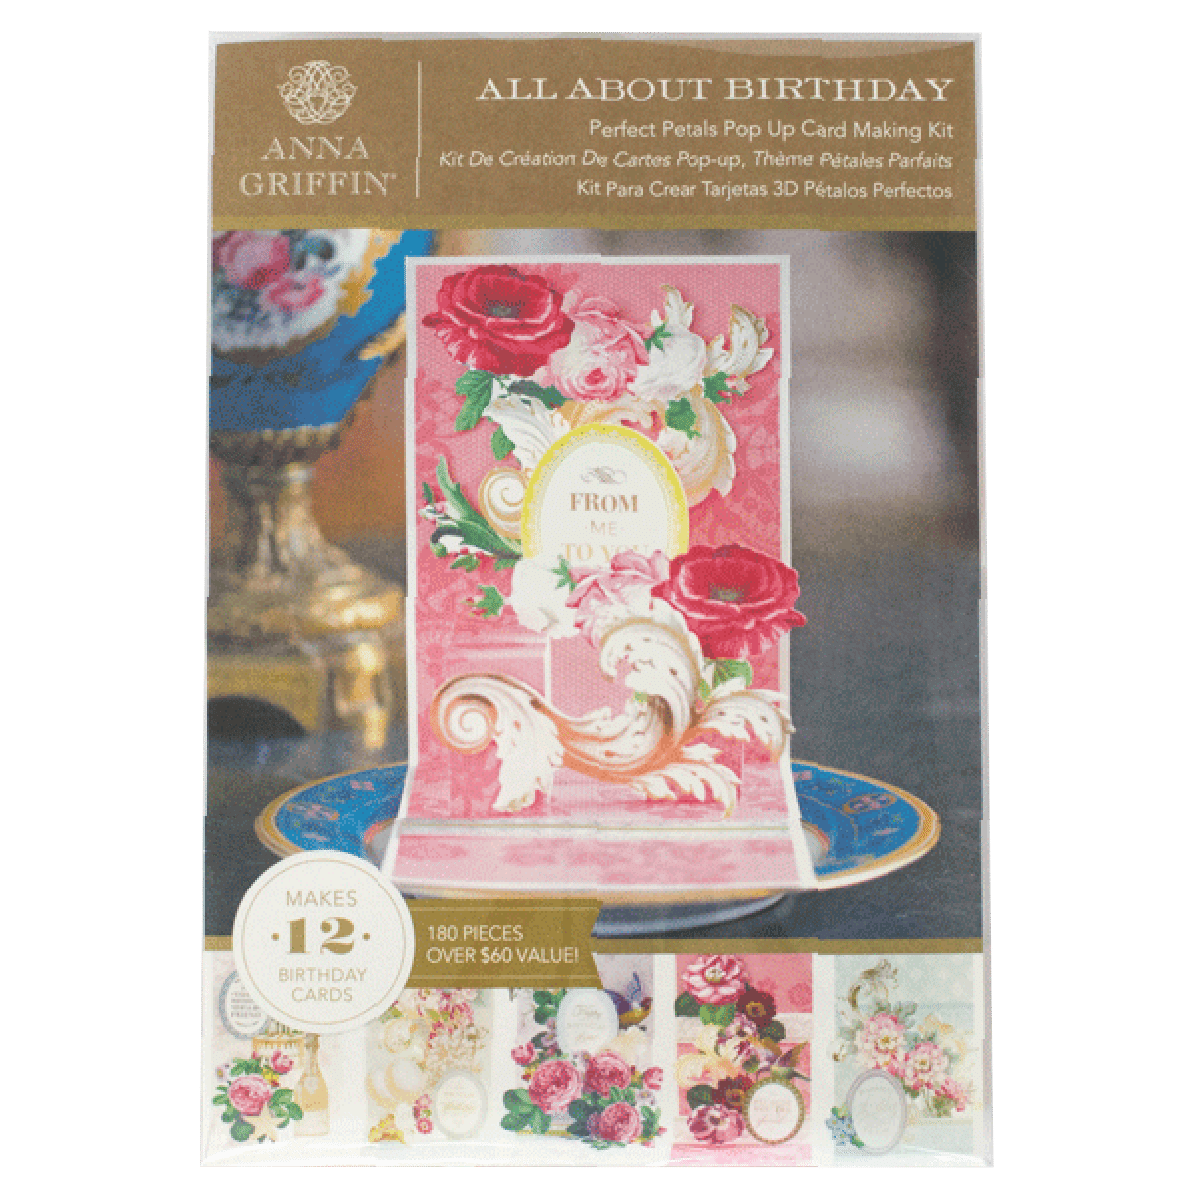 Petals Pop Up Card Kit All About Birthday